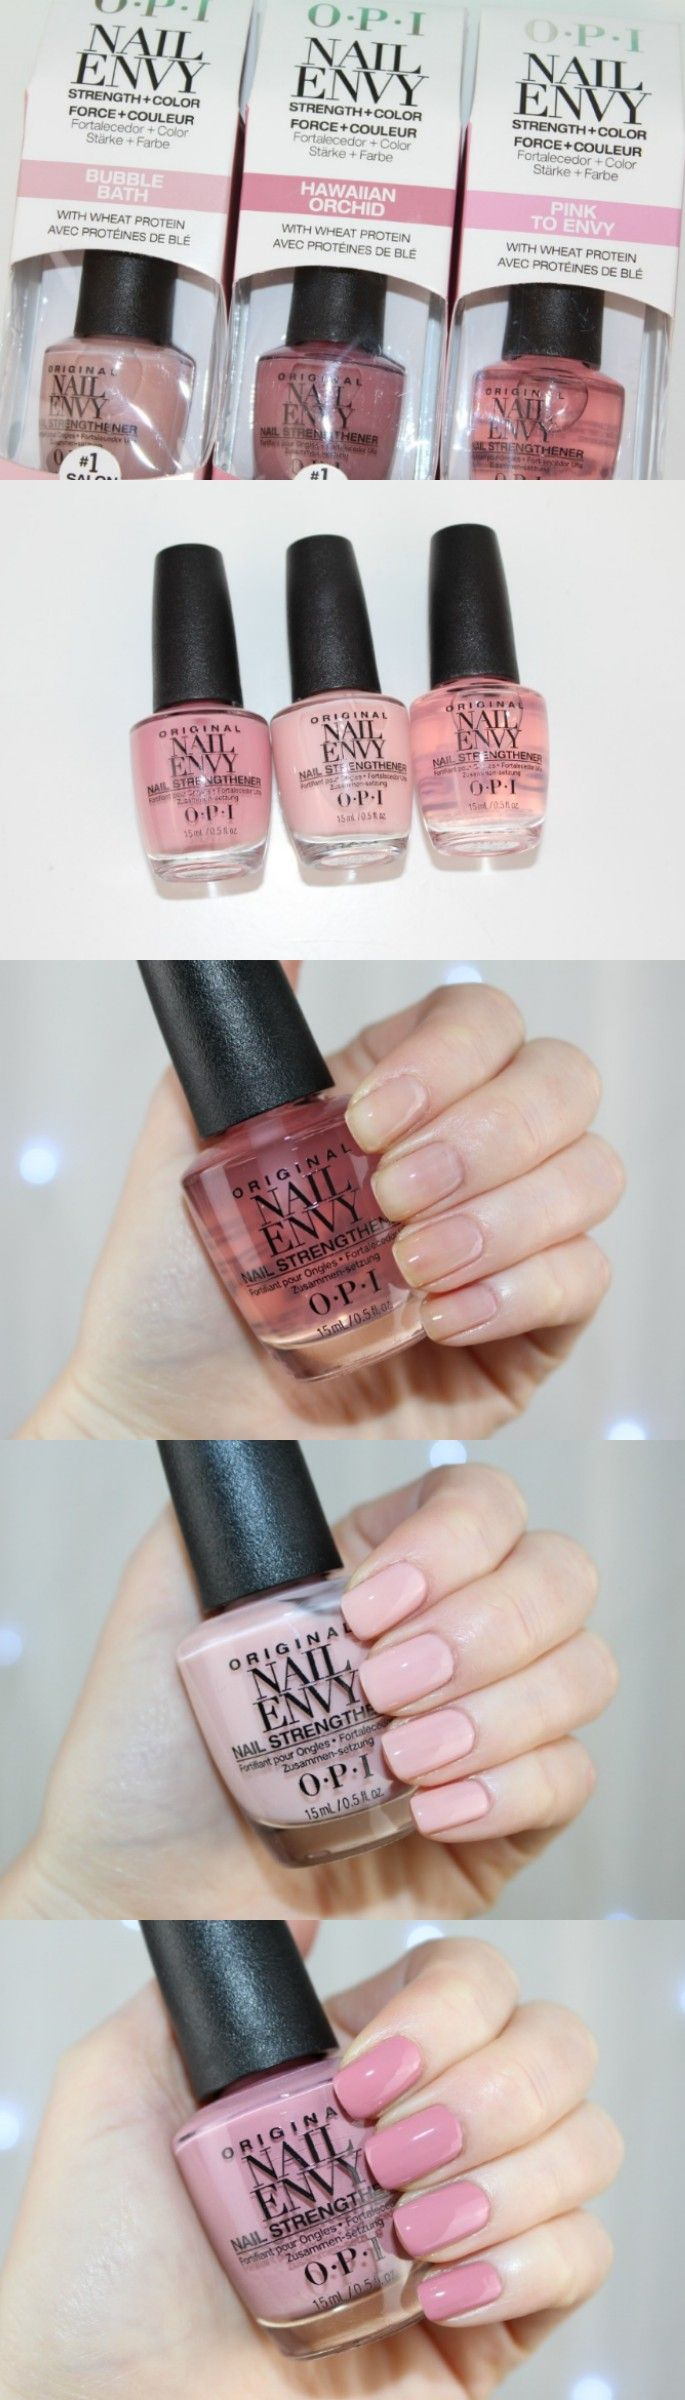 O.P.I Nail Envy Strength and Color - http://pinkparadisebeauty.blogspot.co.uk/2015/12/opi-nail-envy-strength-color-review-and.html